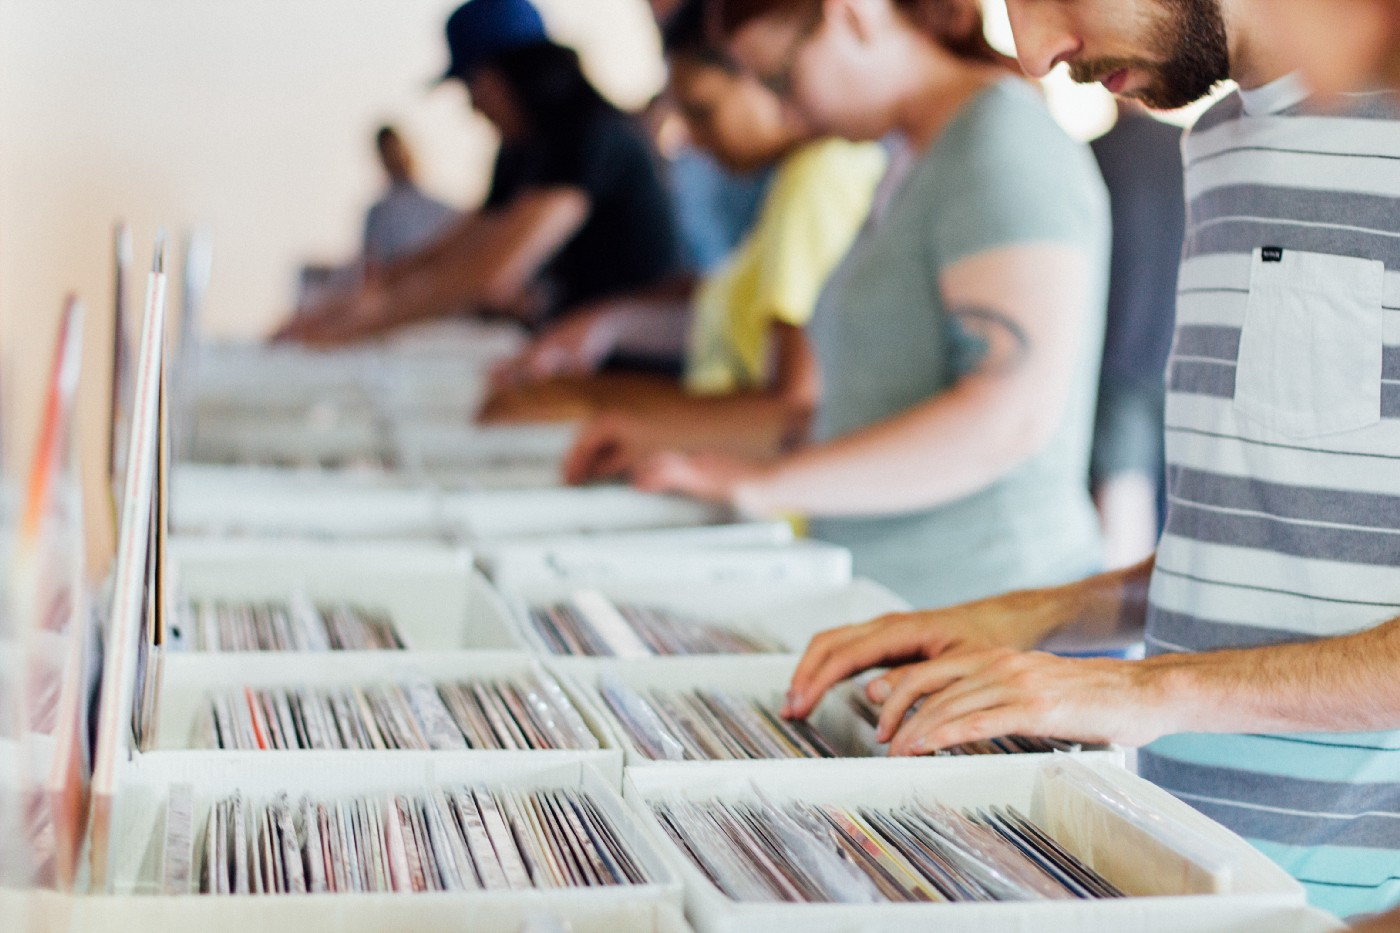 People searching through bins of vinyl records